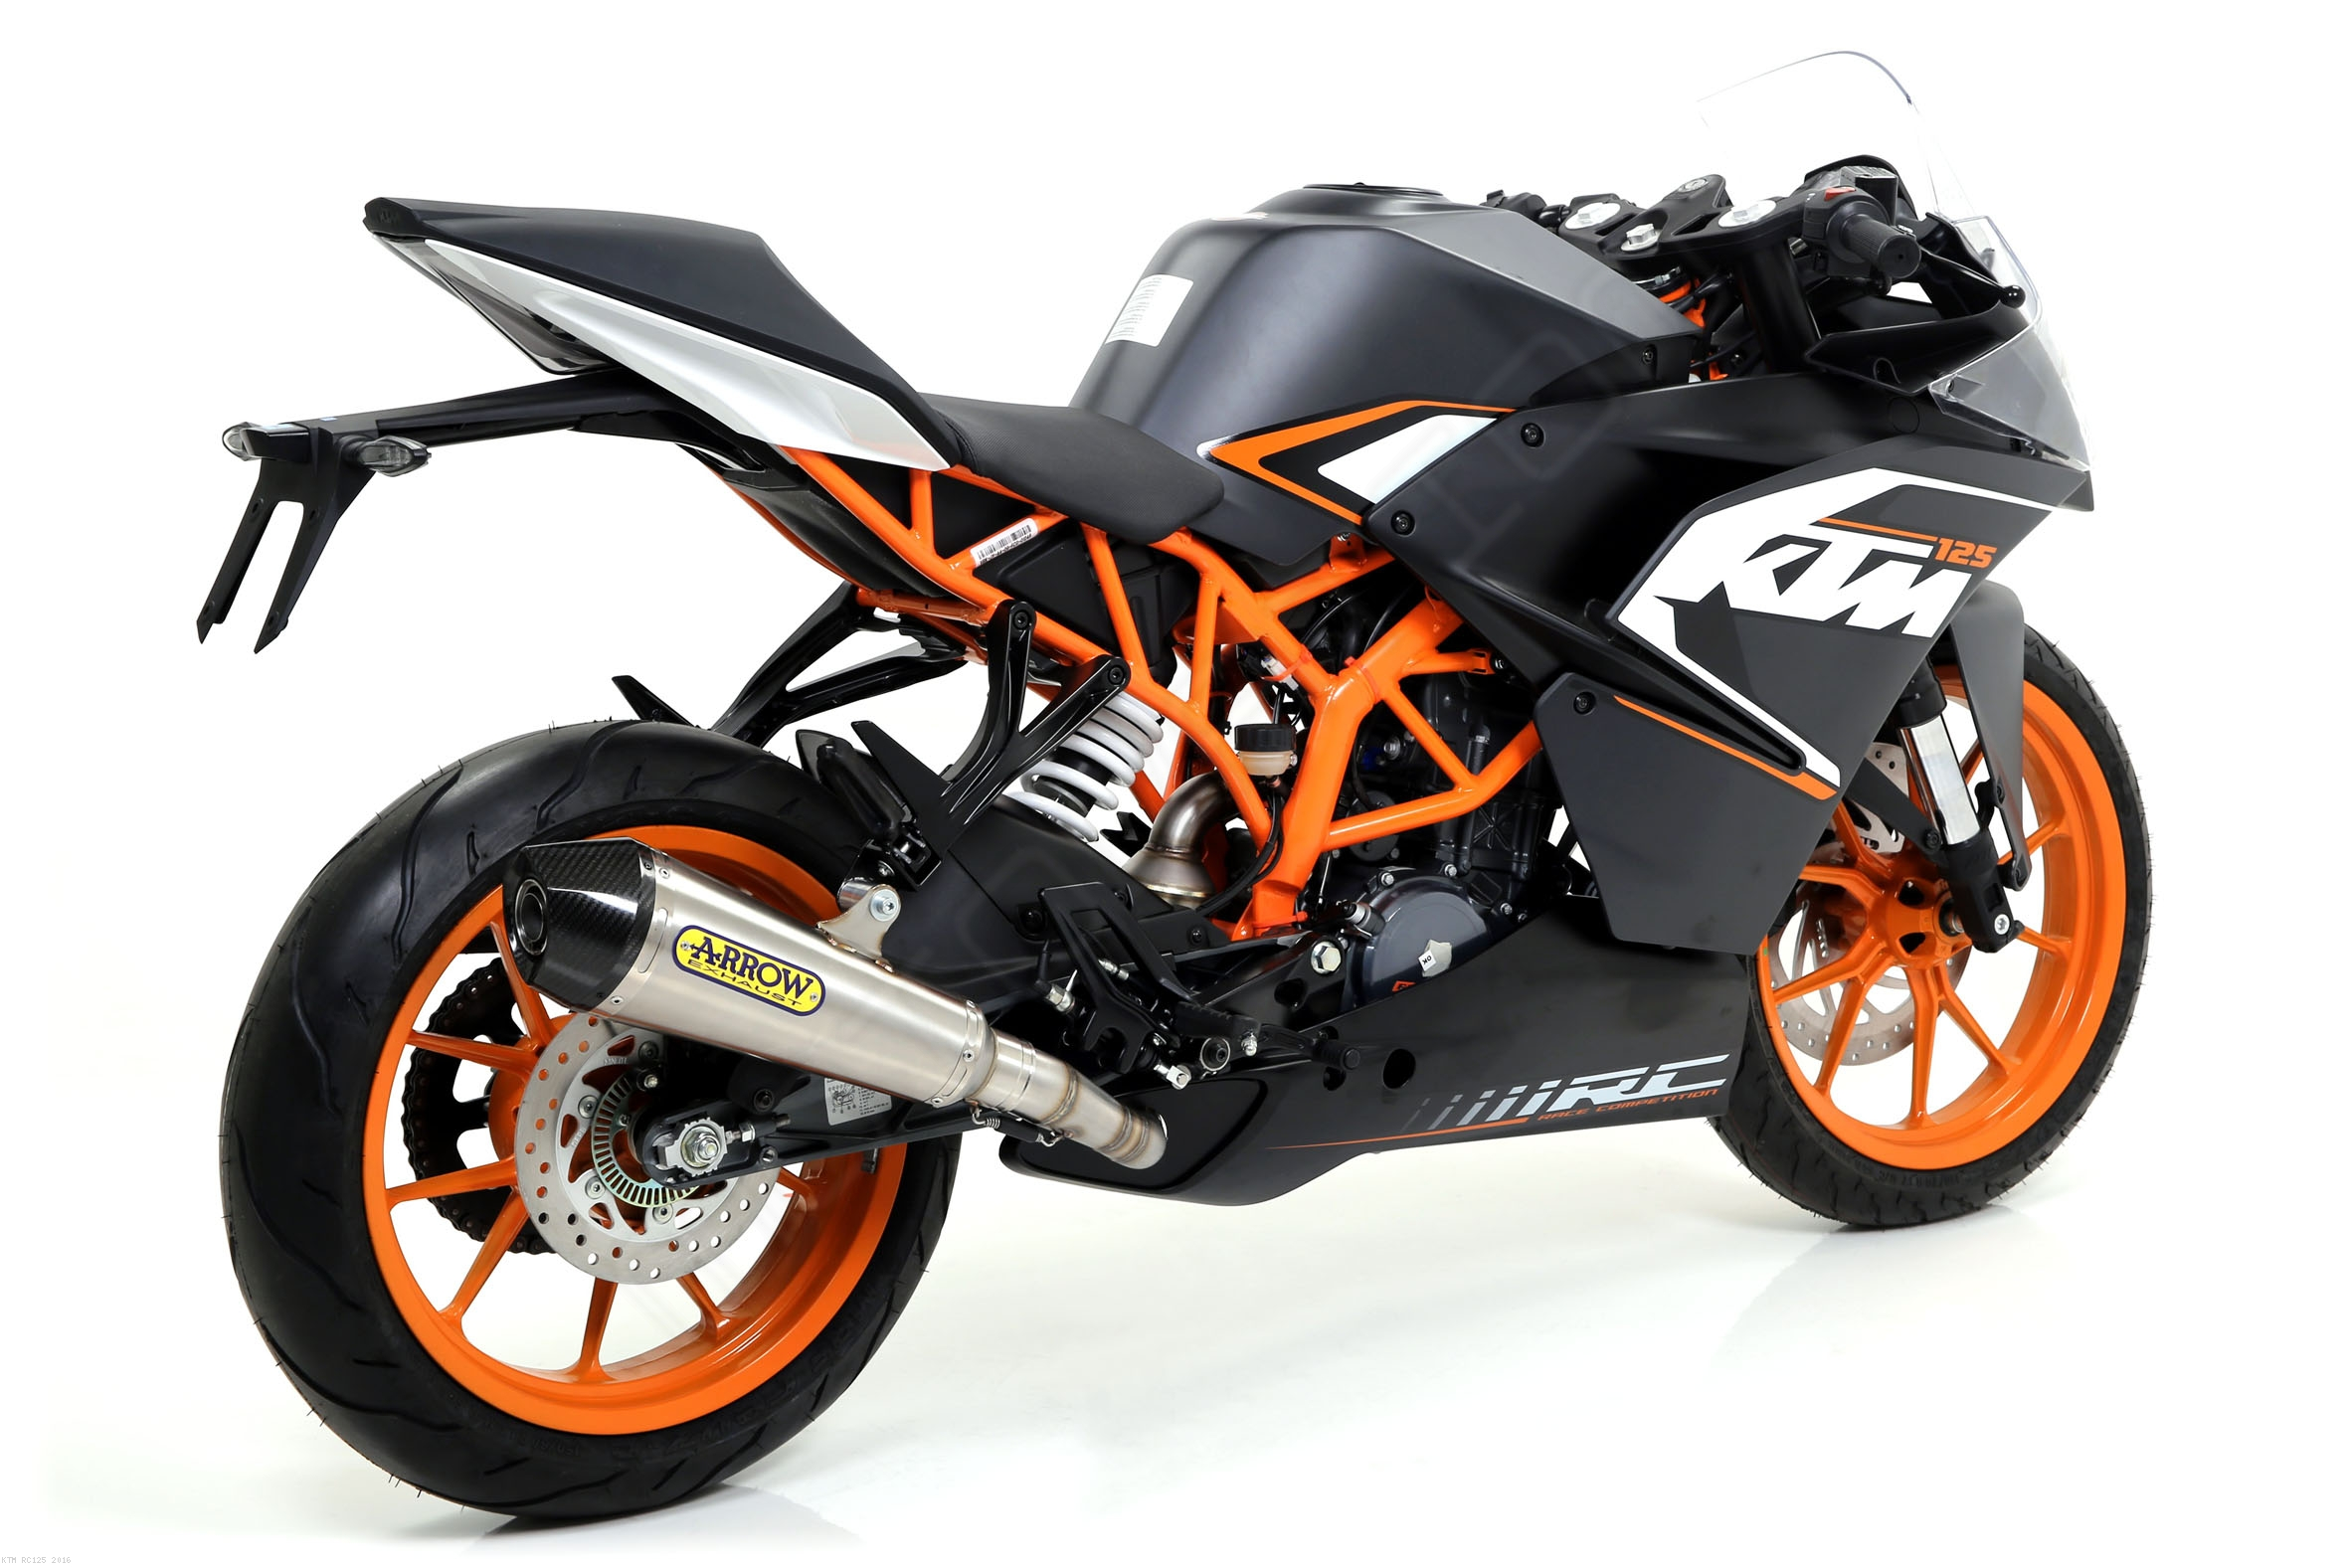 arrow x cone slip on exhaust ktm rc125 2016 71813xki. Black Bedroom Furniture Sets. Home Design Ideas